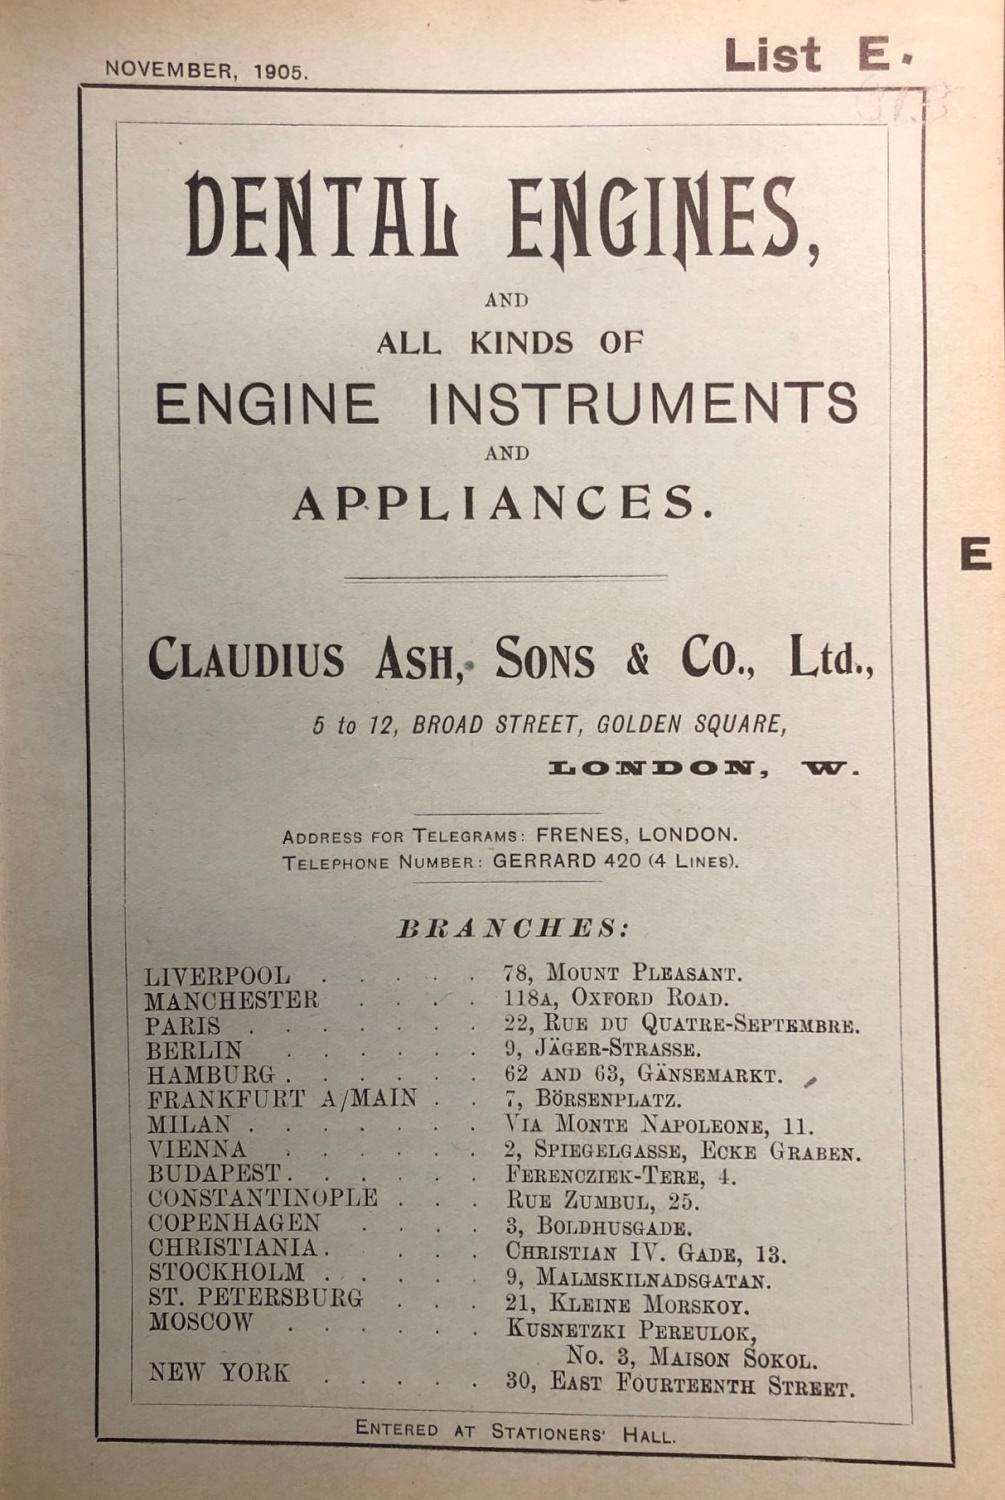 DENTAL ENGINES, AND ALL KINDS OF ENGINE INSTRUMENTS AND APPLIANCES. List E. Early Dental Trade Catalogue Good Softcover pp. 72. Contains illustrations throughout. This item is an illustrated catalogue of professional dental equipment and appliances issued by Claudius As